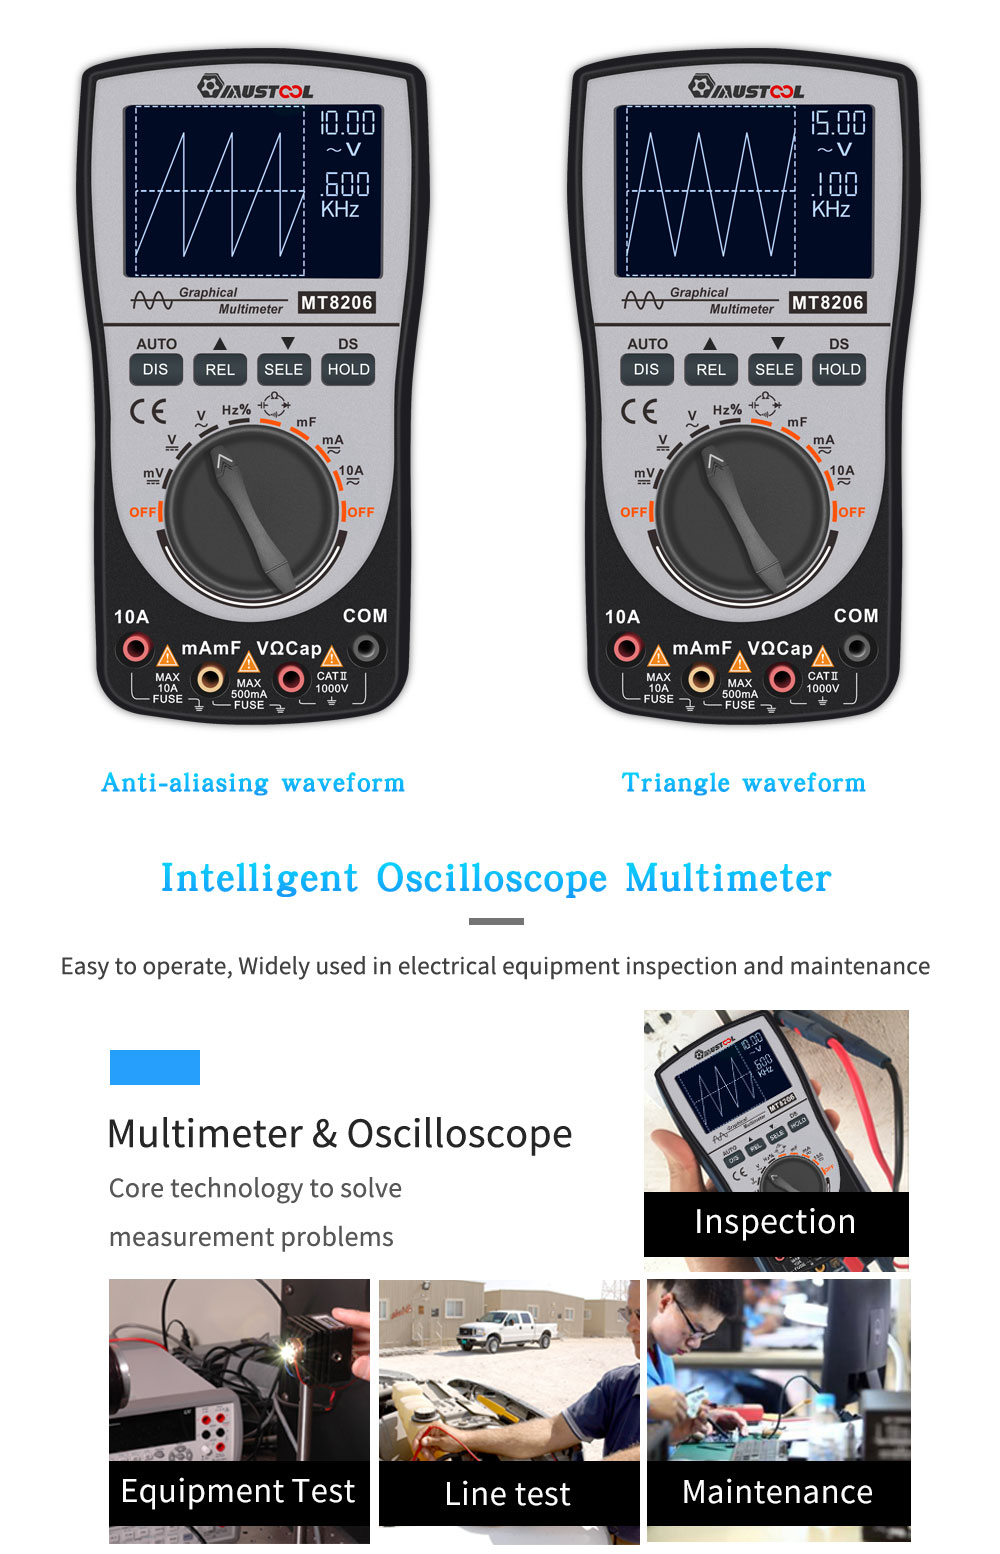 MUSTOOL MT8206 2 in 1 Intelligent Digital Oscilloscope Multimeter AC/DC Current Voltage Resistance Frequency Diode Tester with Analog Bar Graph